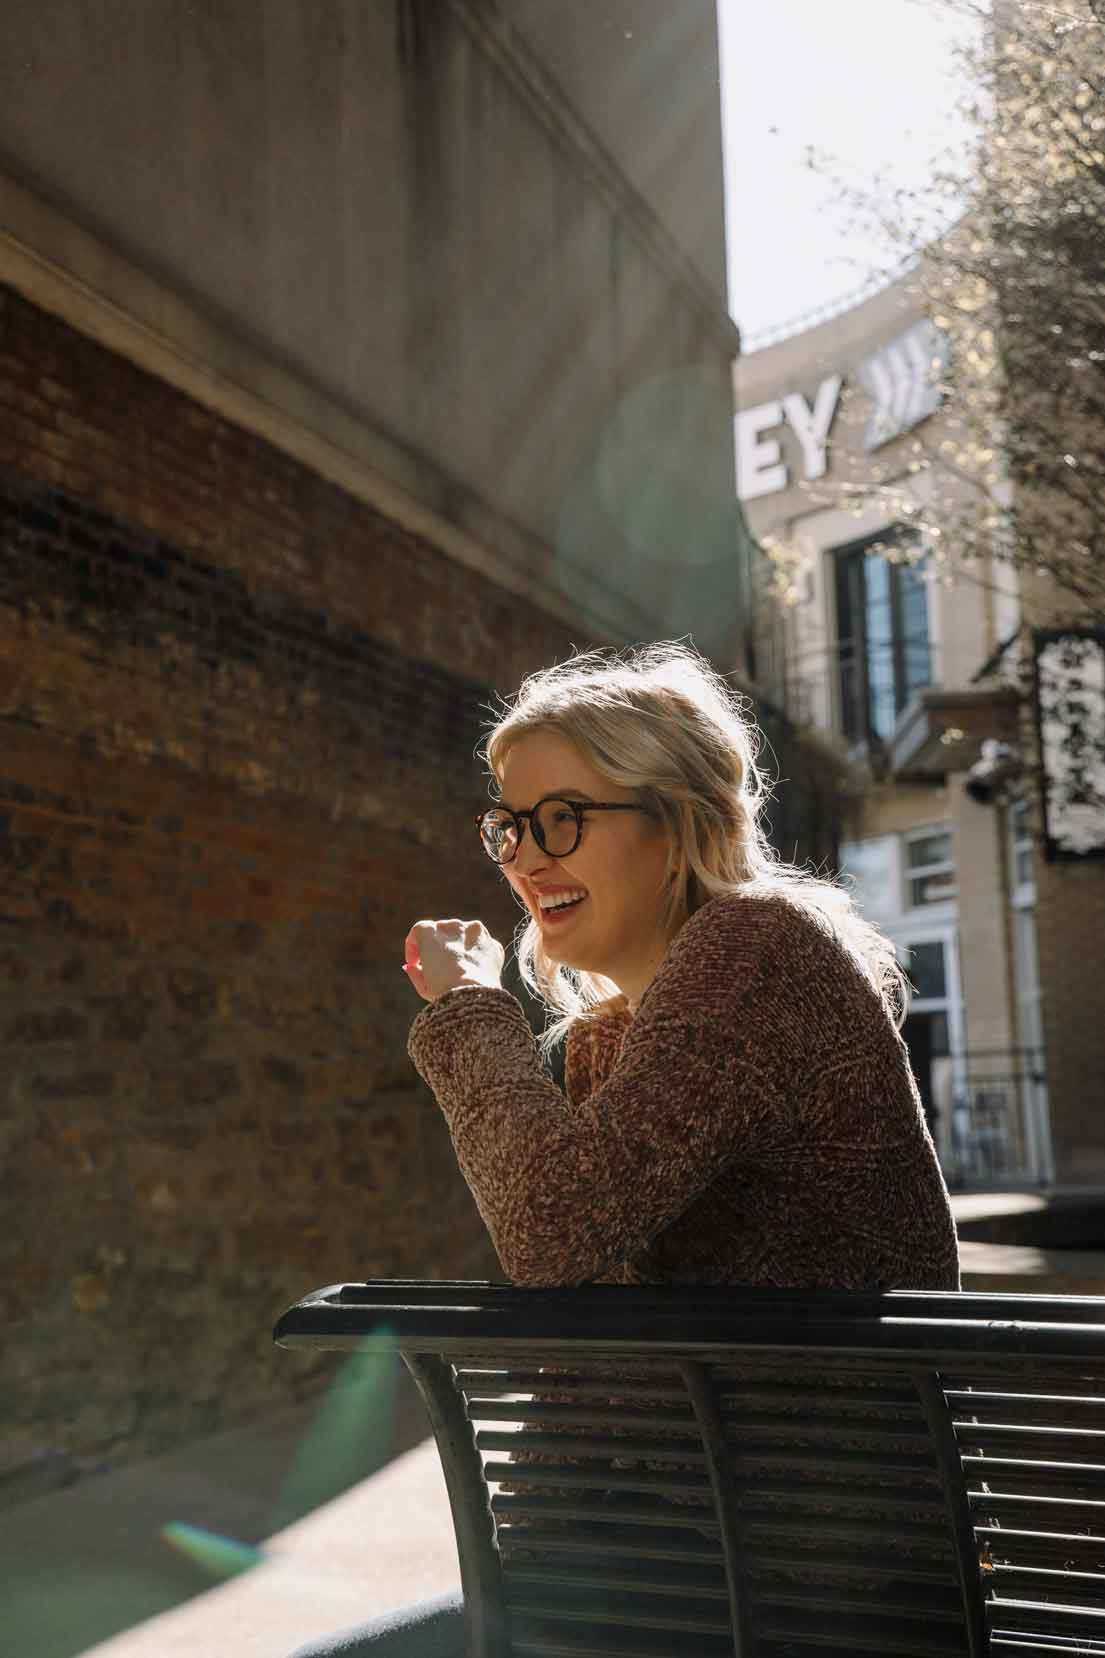 Photo of female in late twenties wearing glasses with blond hair sitting on a bench smiling